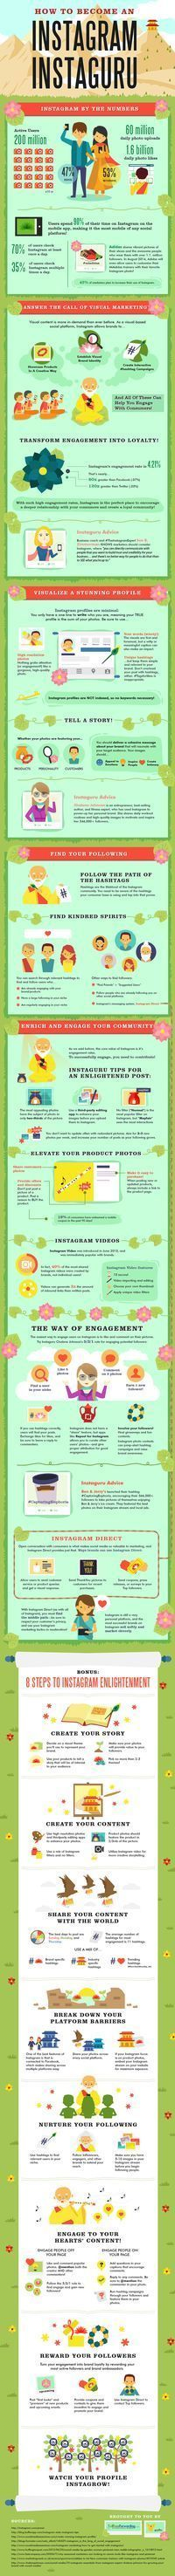 Social Media Marketing On Instagram: Become An Instaguru. #Instagram #Marketing #SocialMedia